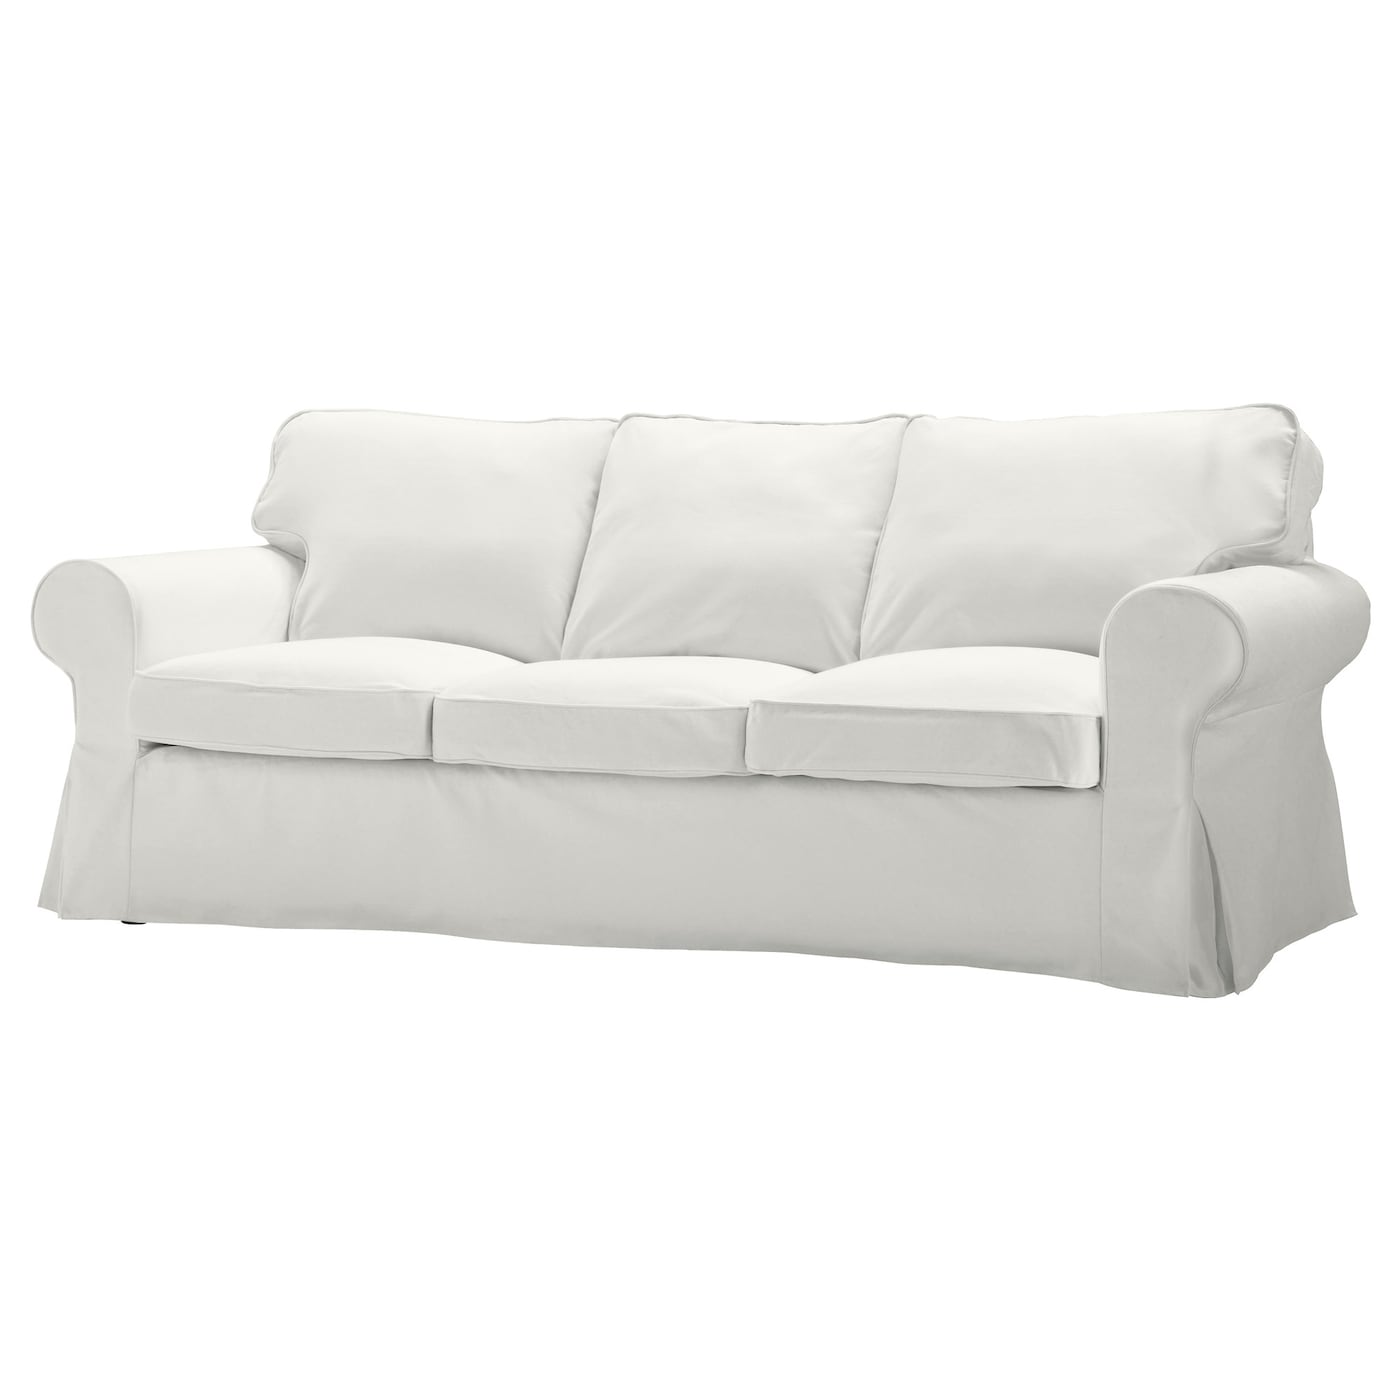 EKTORP Cover three seat sofa Blekinge white IKEA